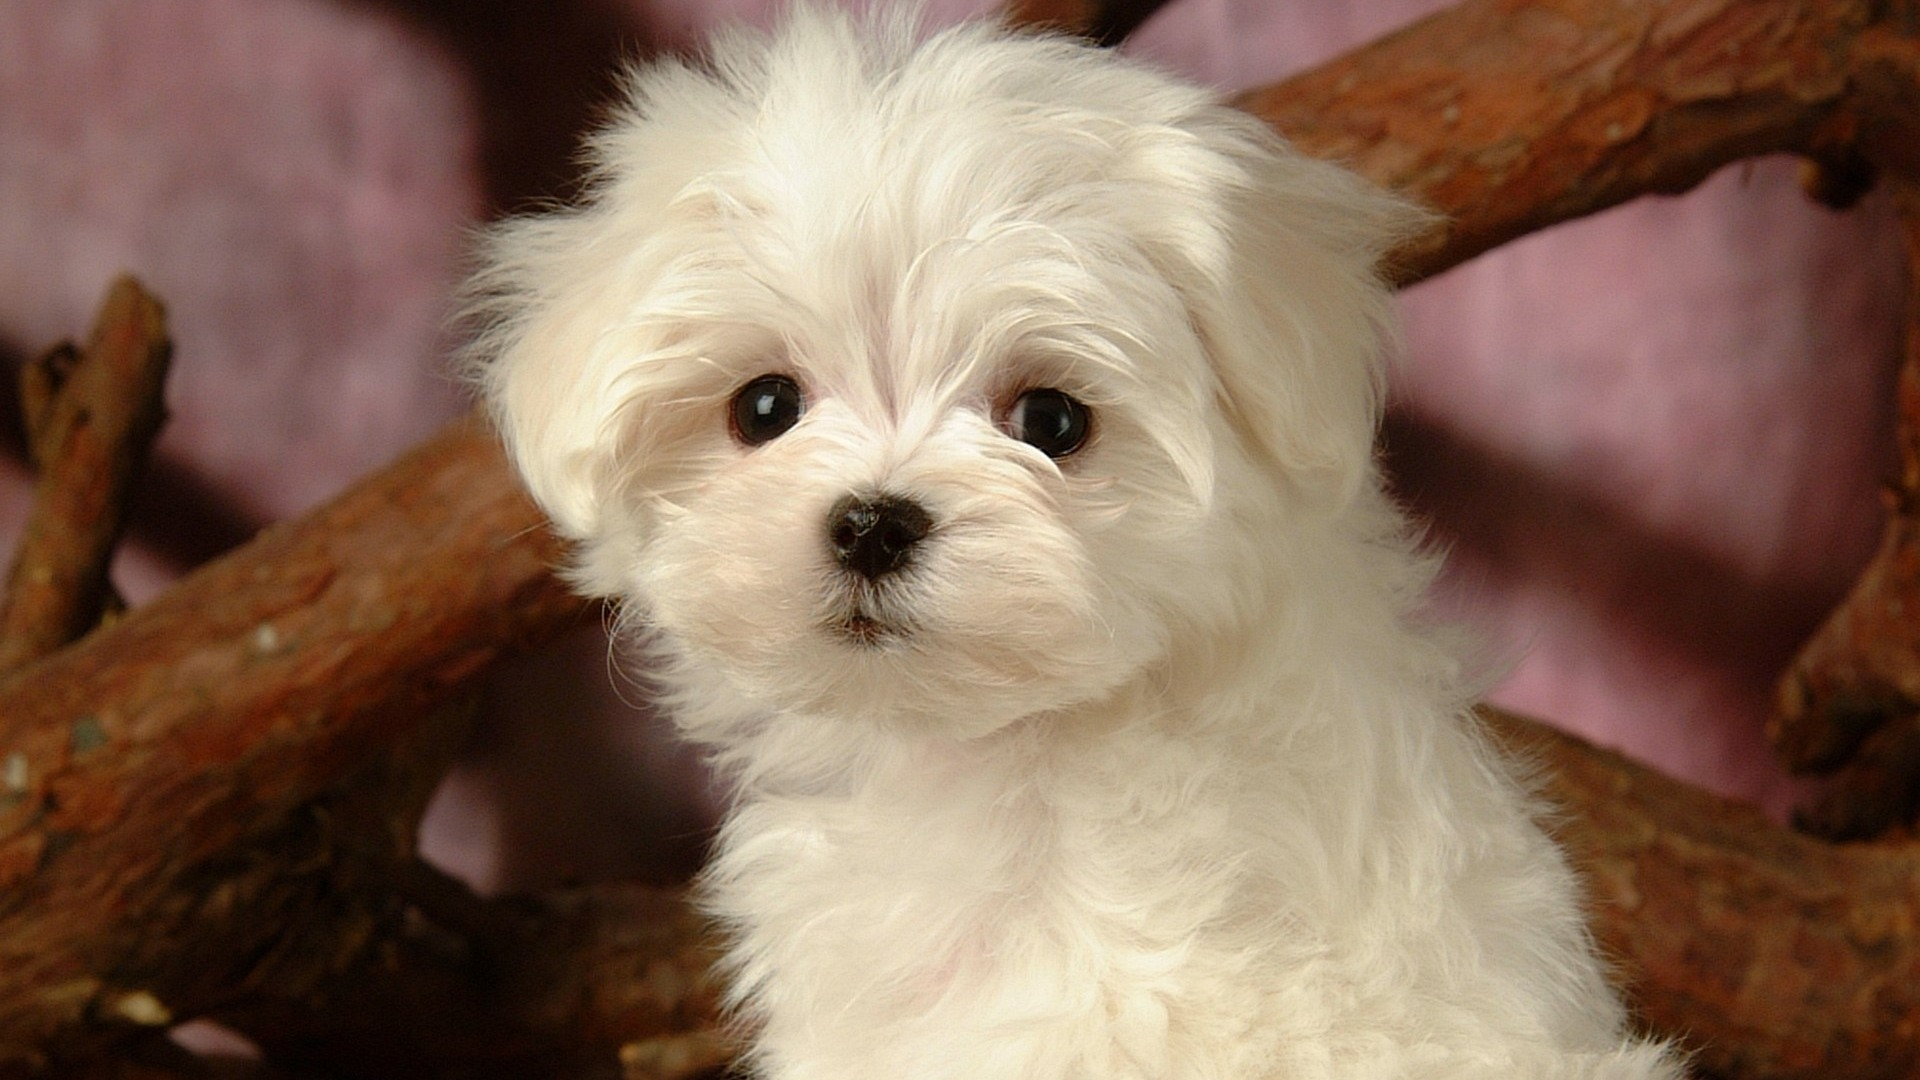 Fluffy Puppies Related Keywords & Suggestions - Fluffy Puppies Long ...